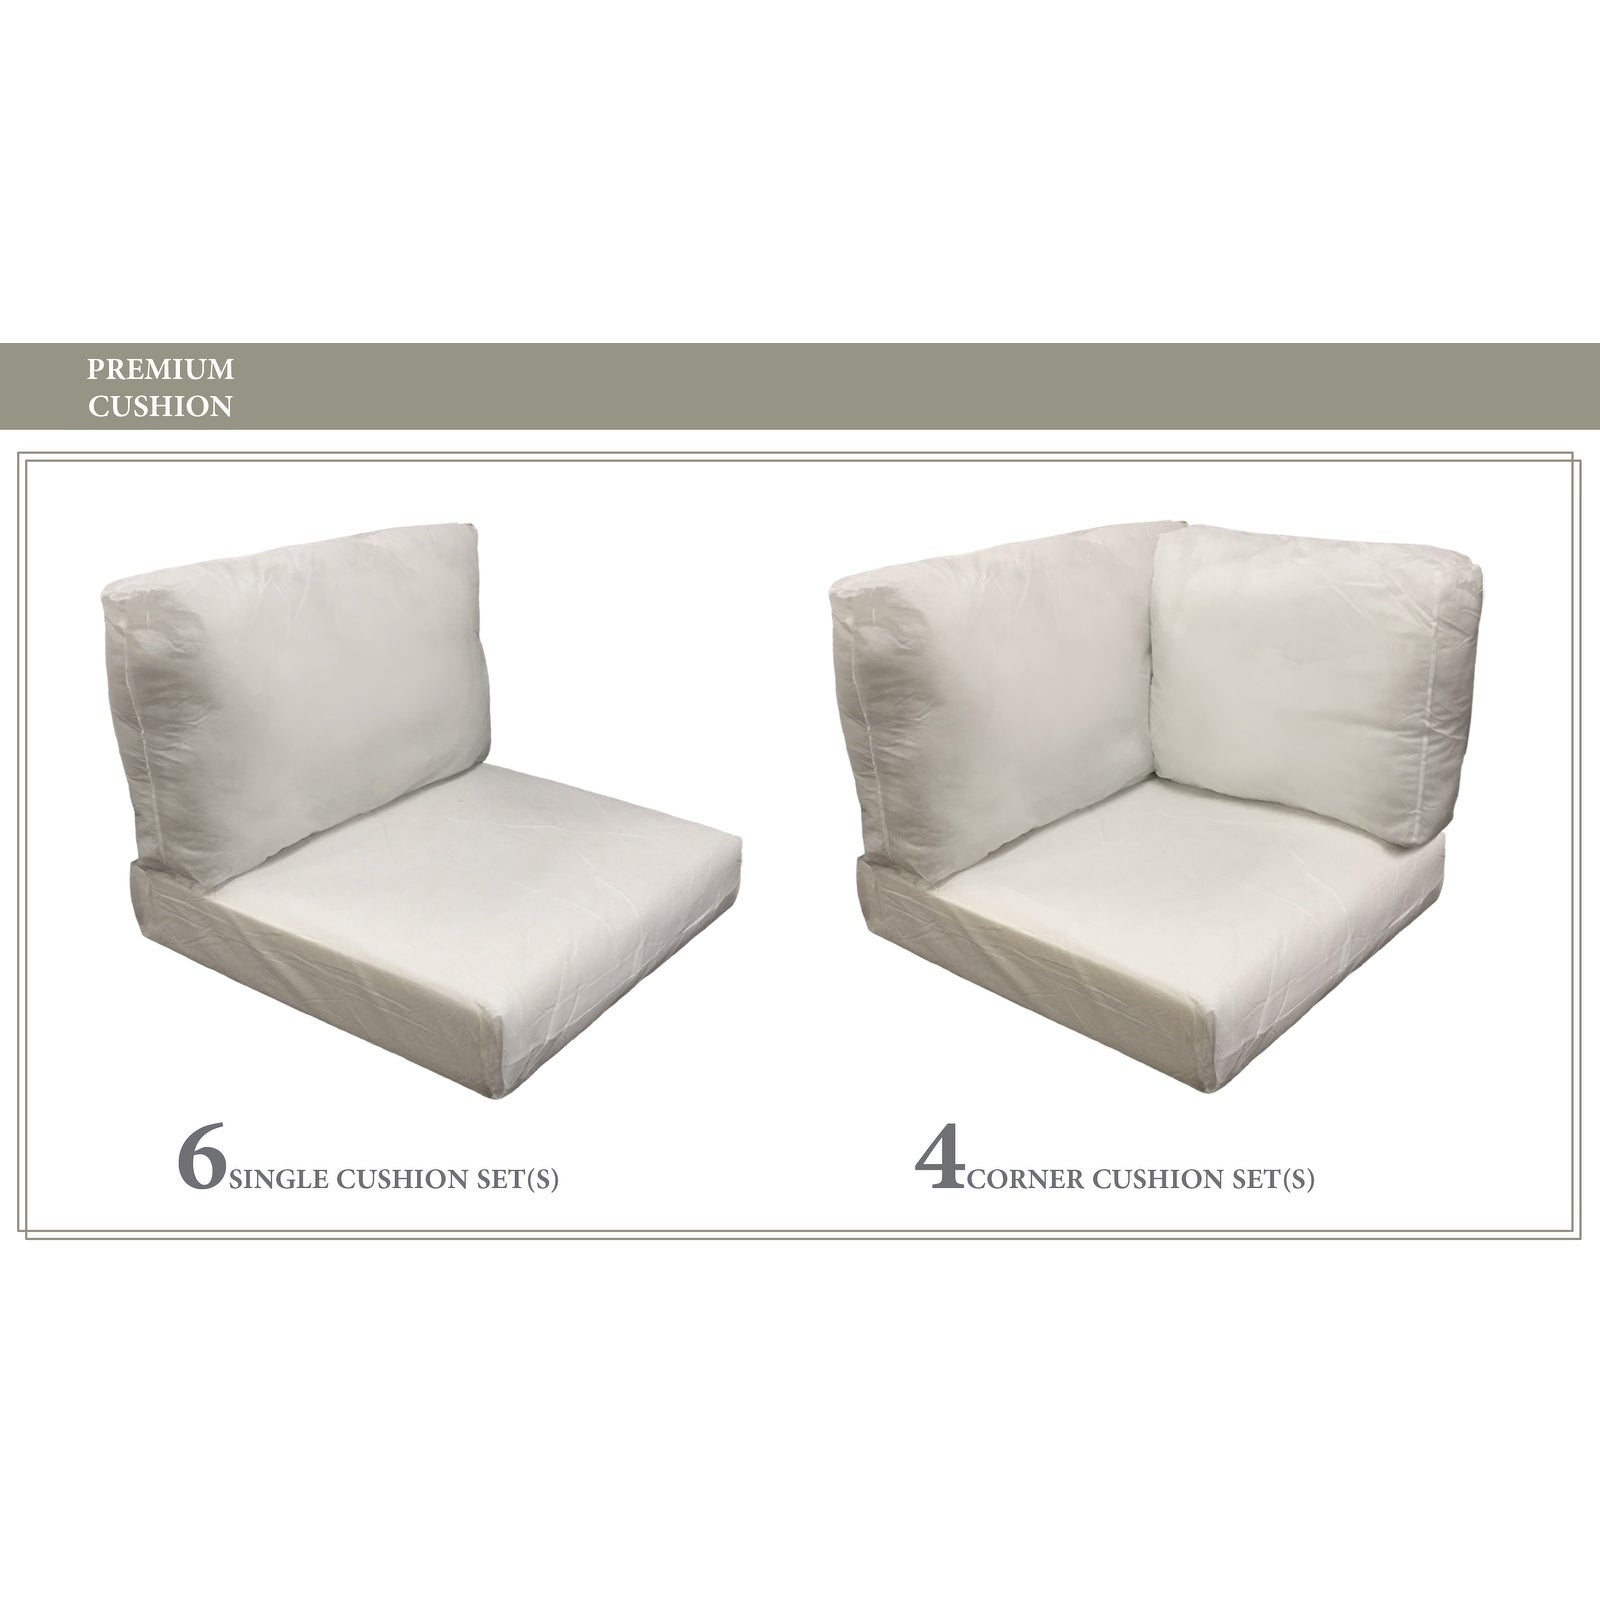 High Back Cushion Set For Florence 11a Free Shipping Today 25438478